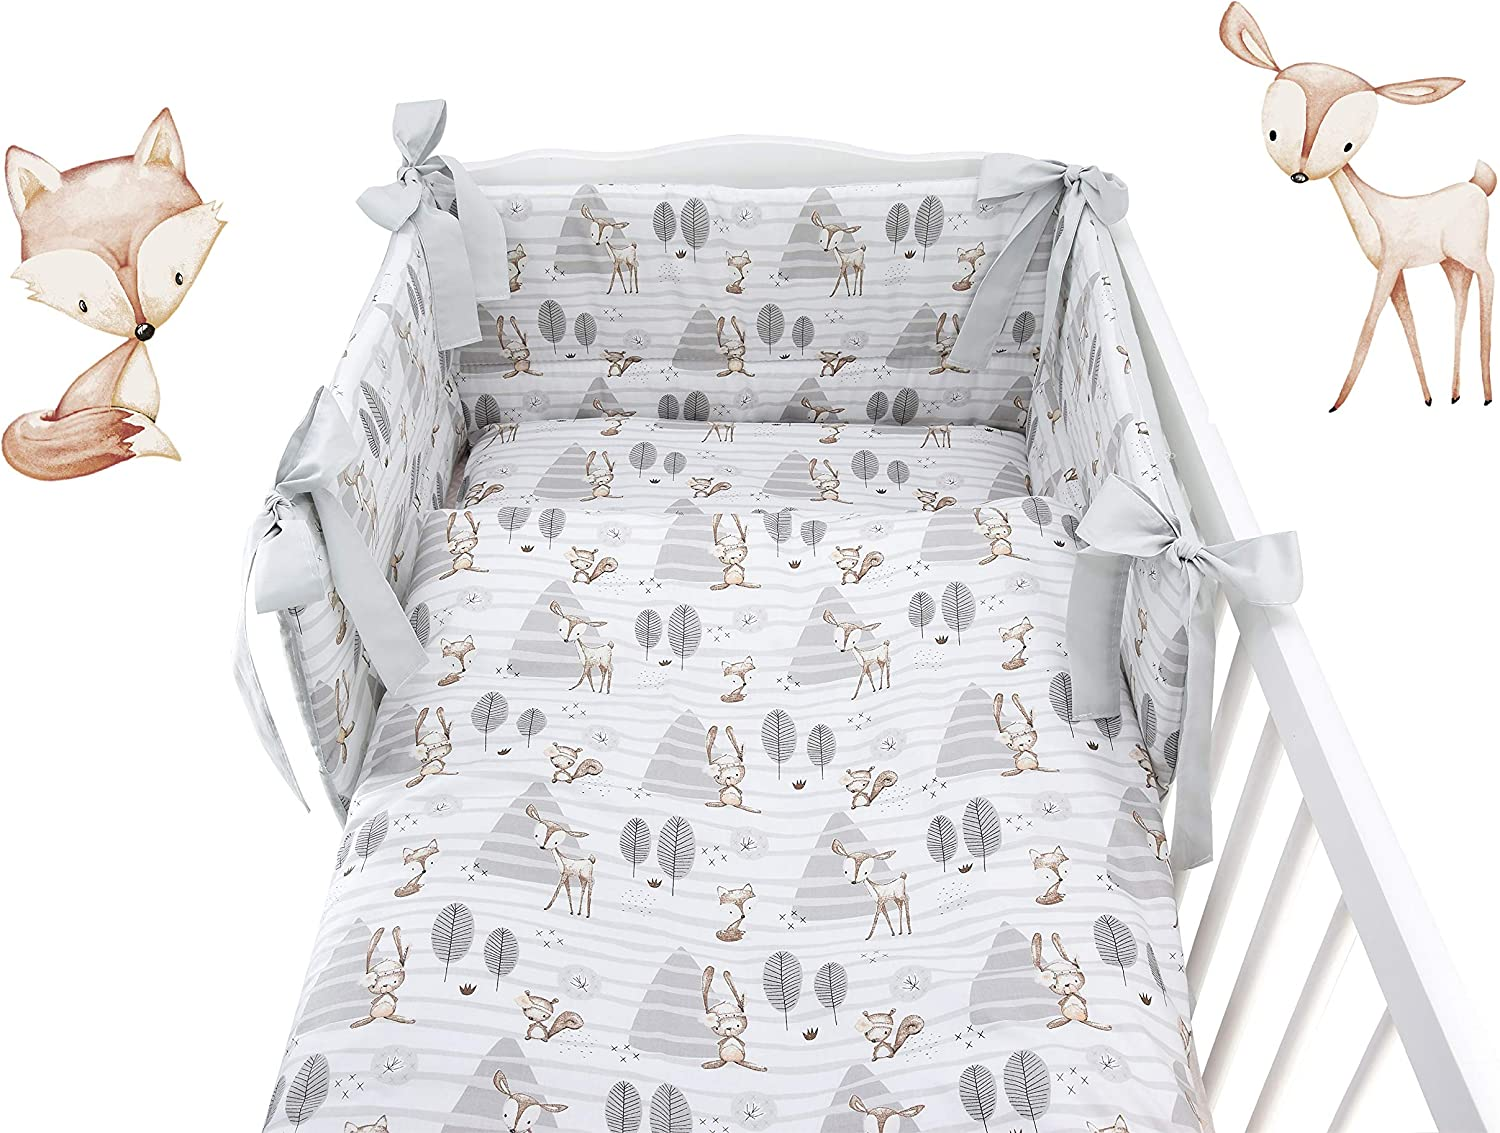 5 Pieces Baby Cot Bedding Set for COT 120X60 OR COT Bed 140X70cm Inc -Duvet+Pillow+Duvet Cover+Pillow CASE+ Bumper Mattress Size Birds with Flowers//Grey Back, COT 120X60